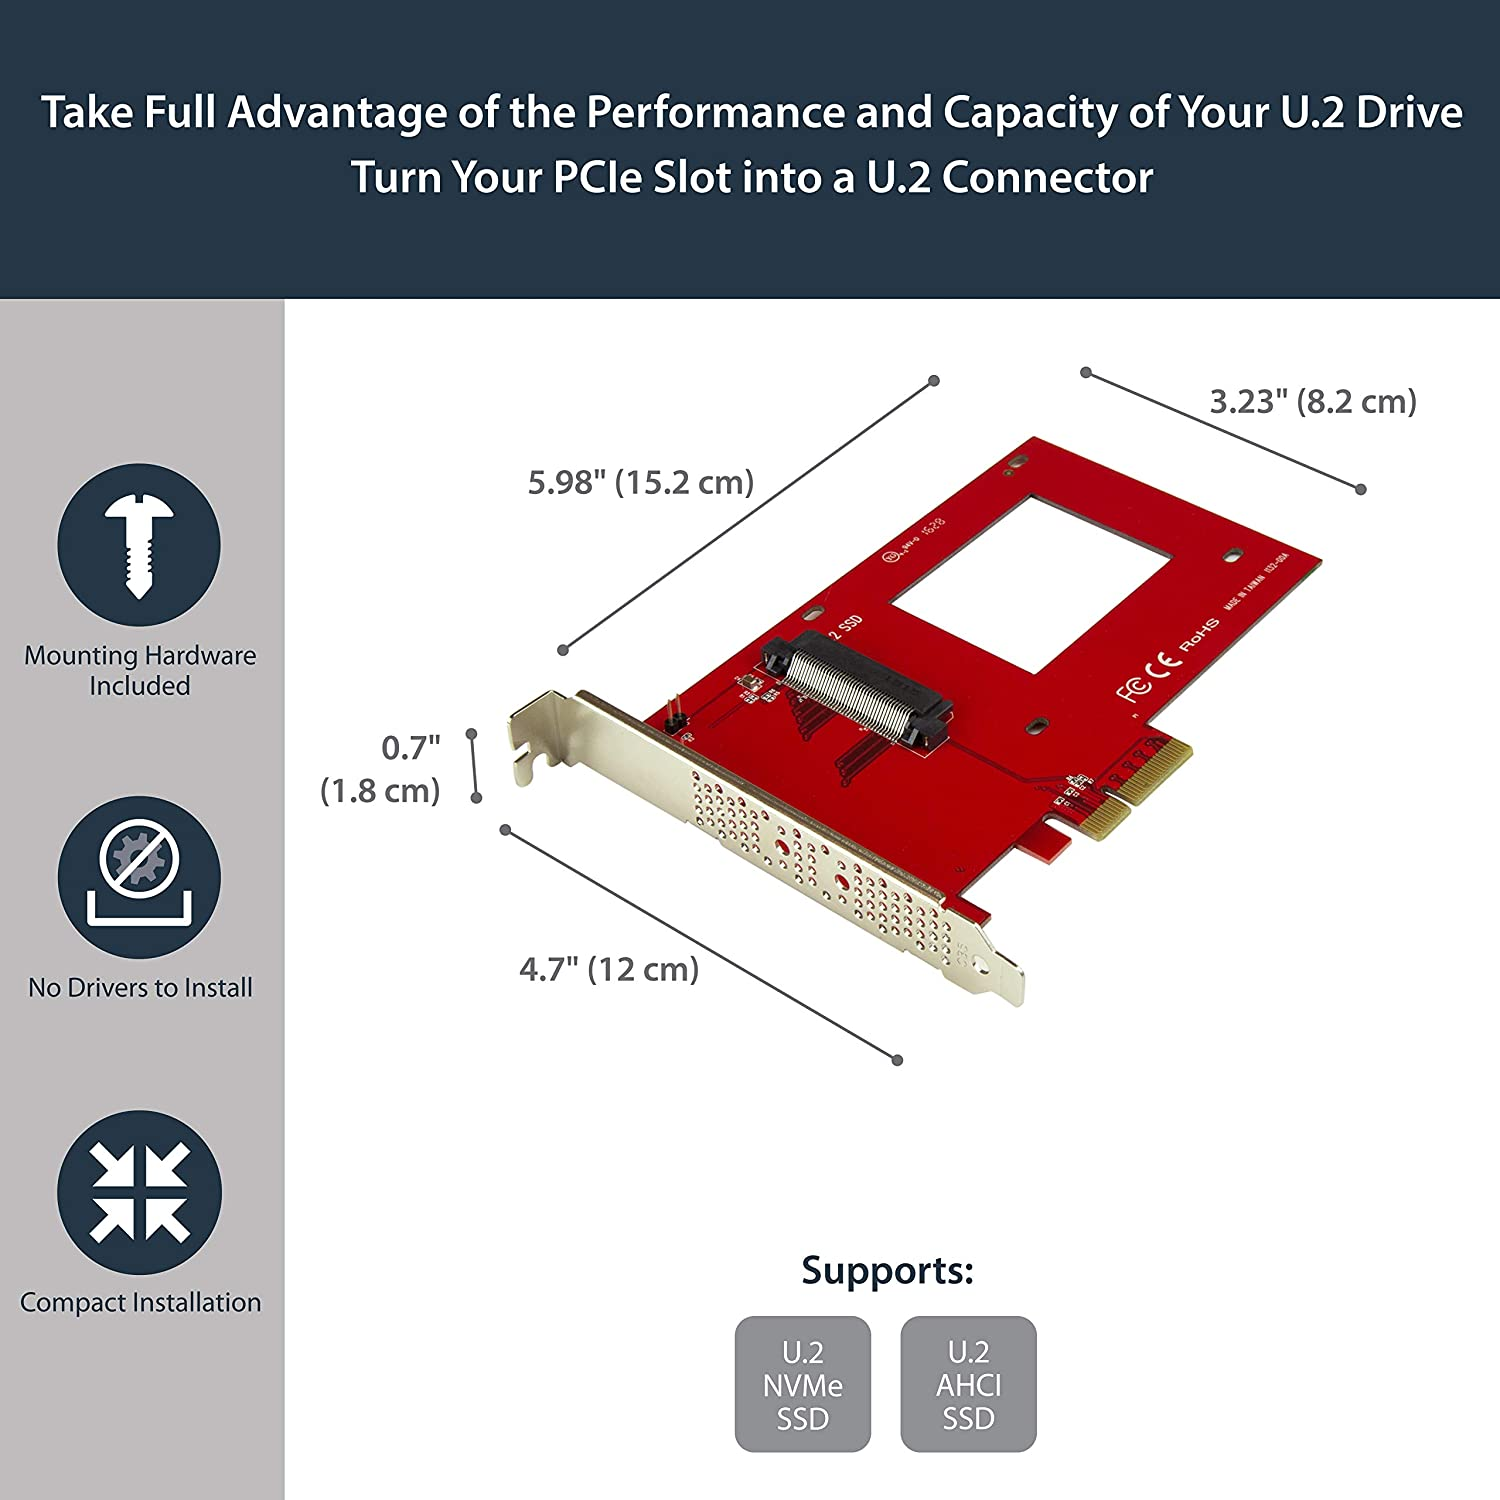 StarTech.com U.2 to PCIe Adapter for 2.5